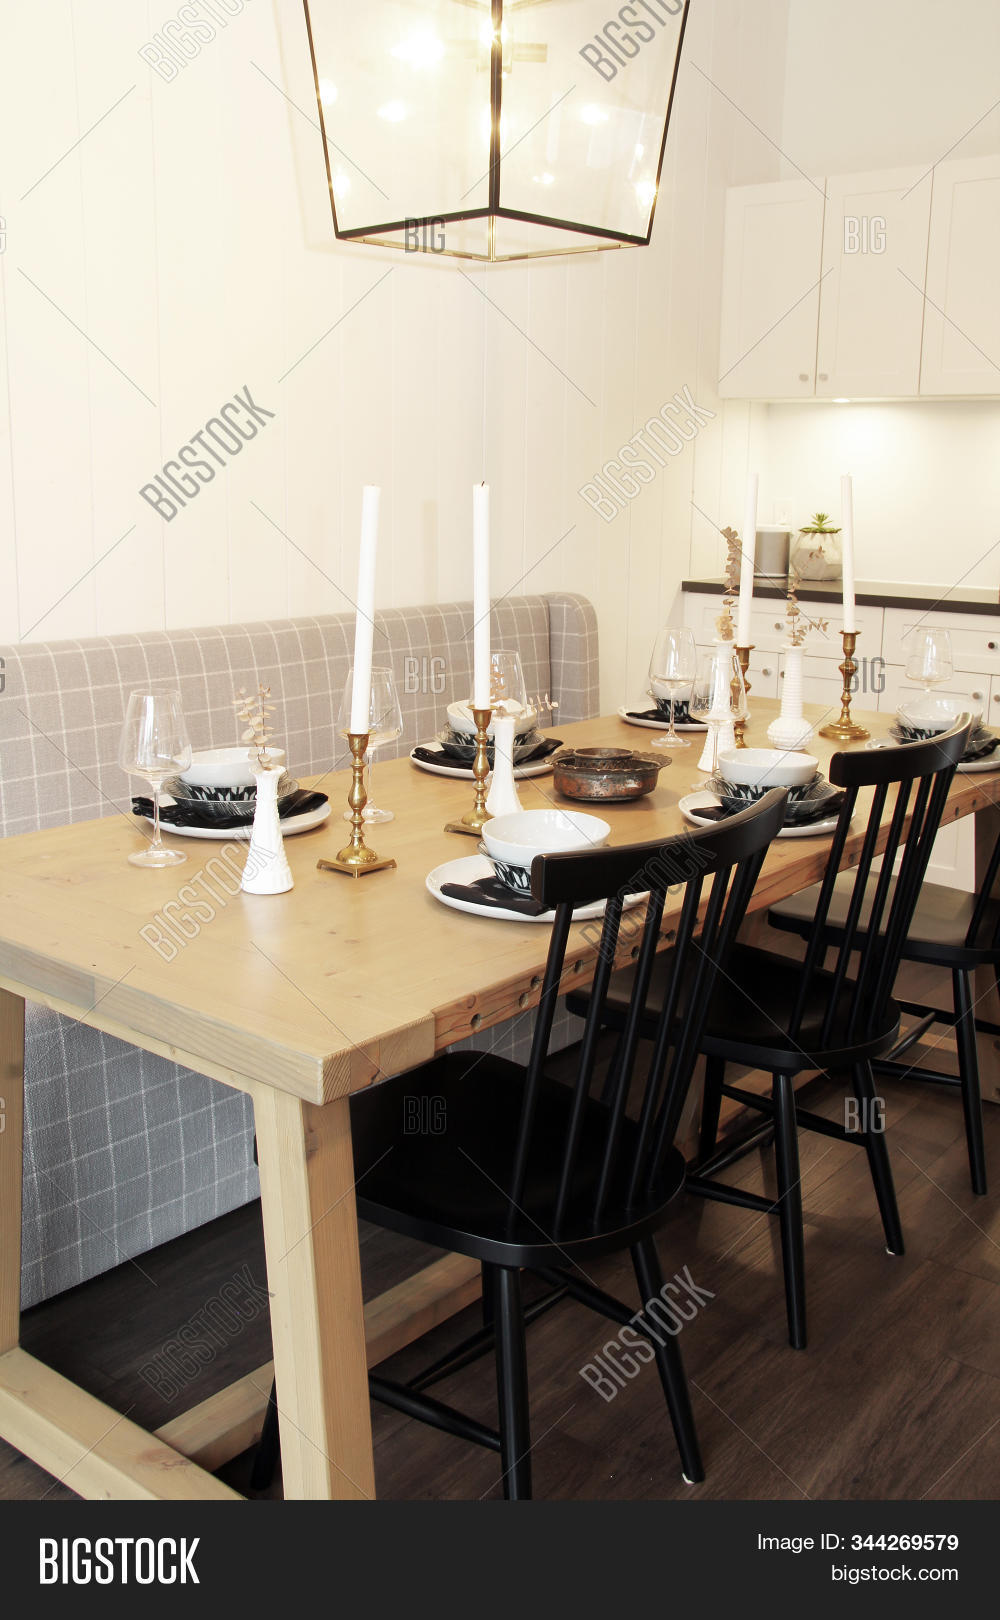 Wooden Kitchen Table Image Photo